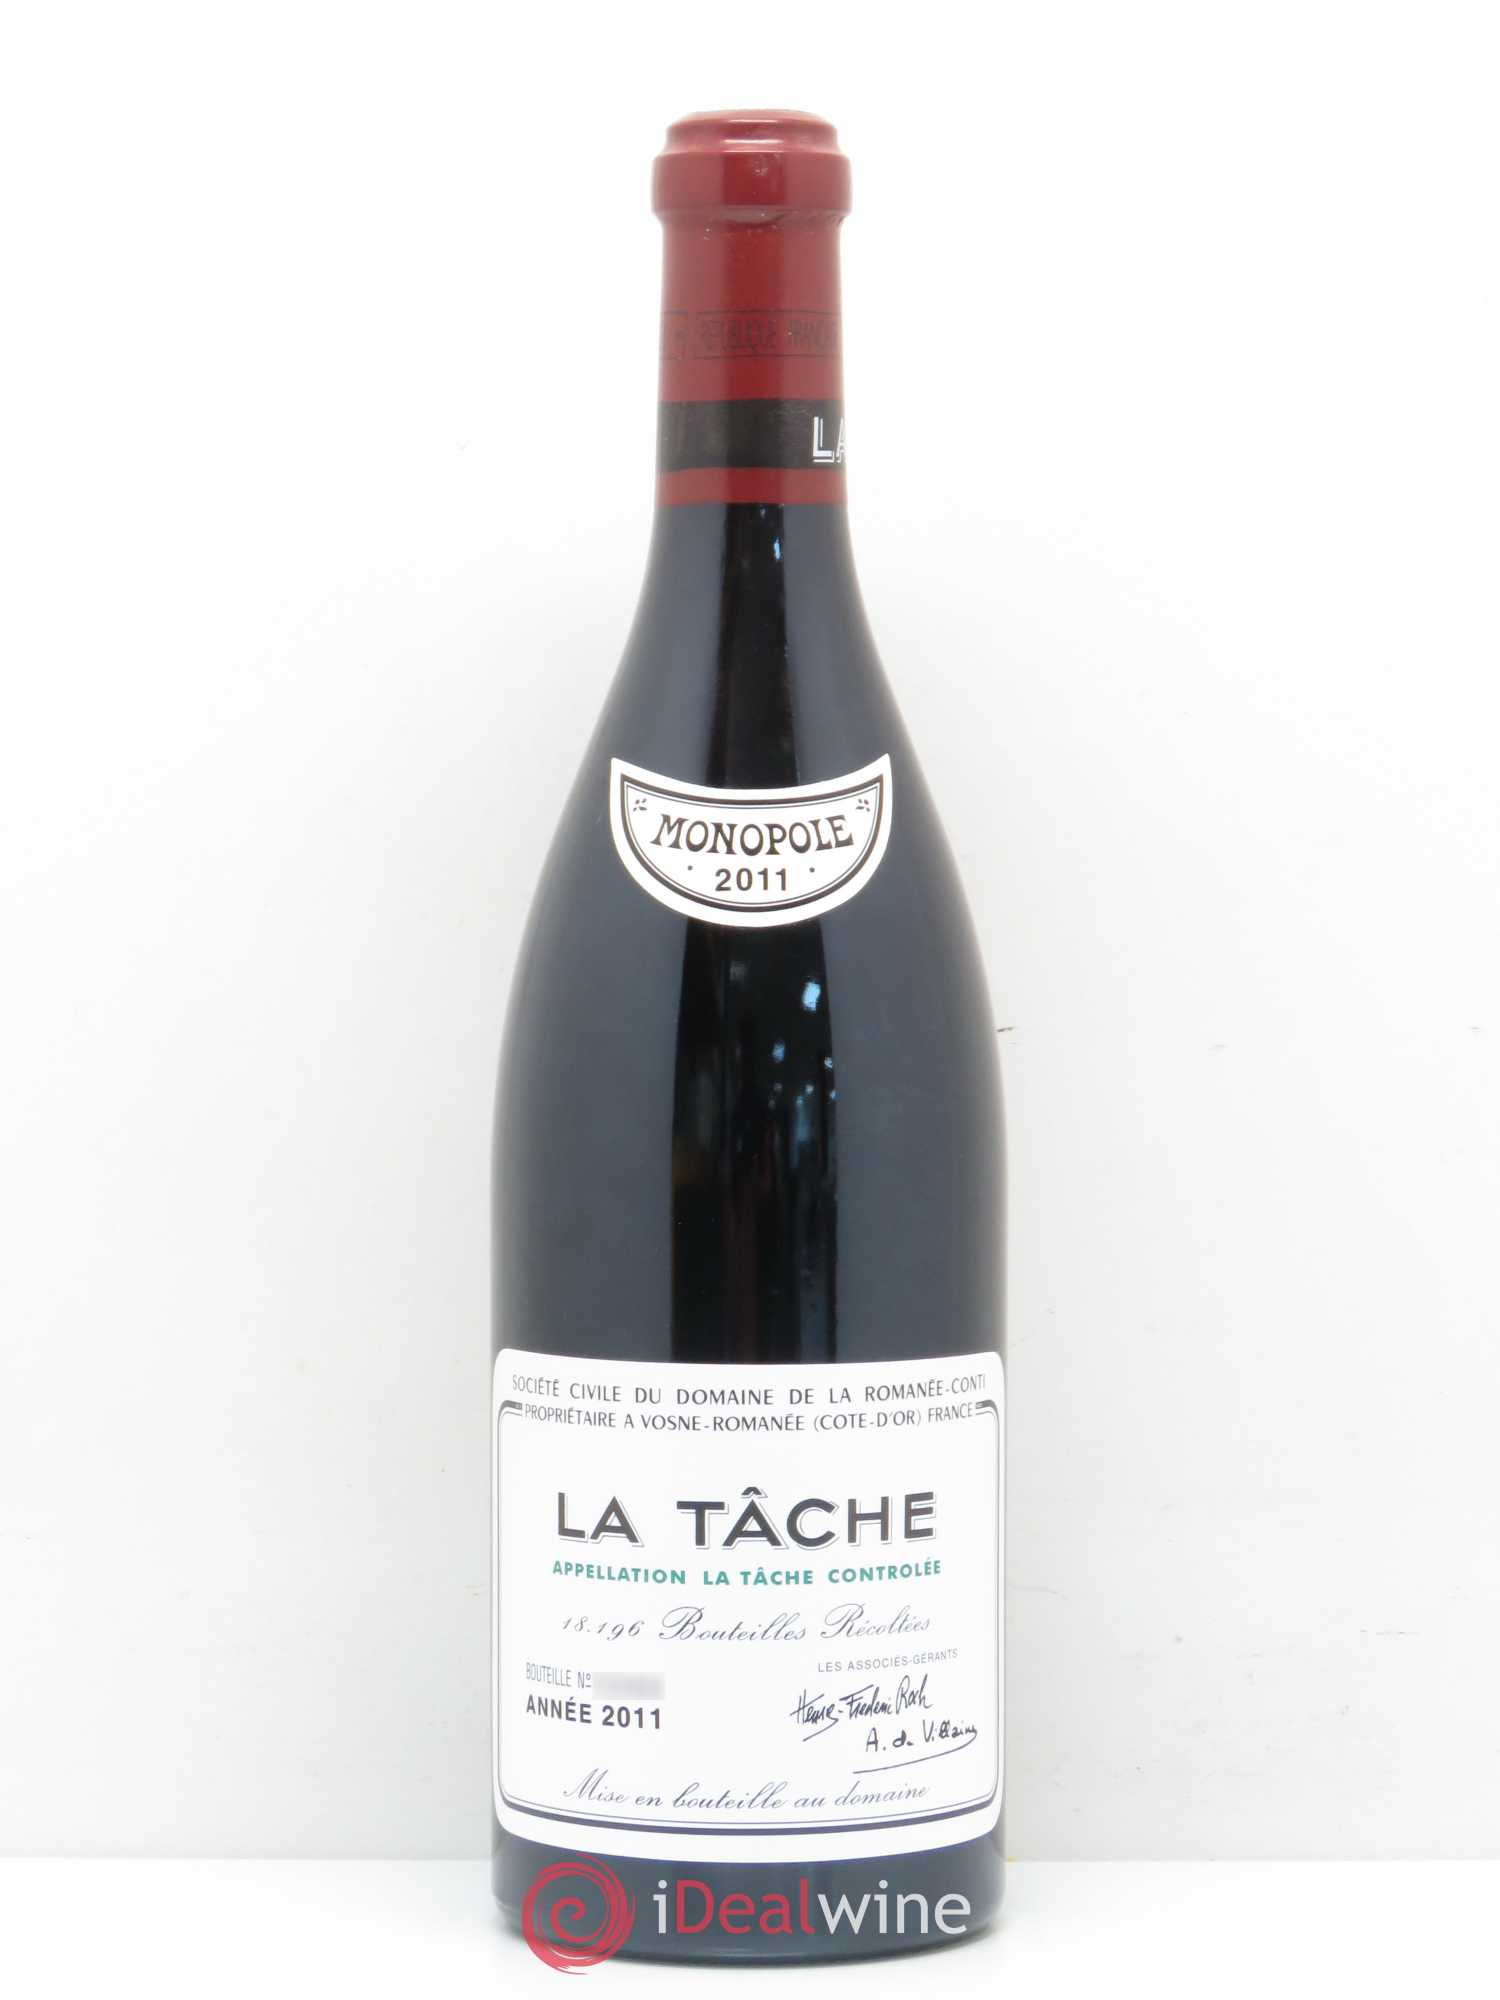 La Tâche Grand Cru Domaine de la Romanée-Conti  2011 - Lot of 1 Bottle